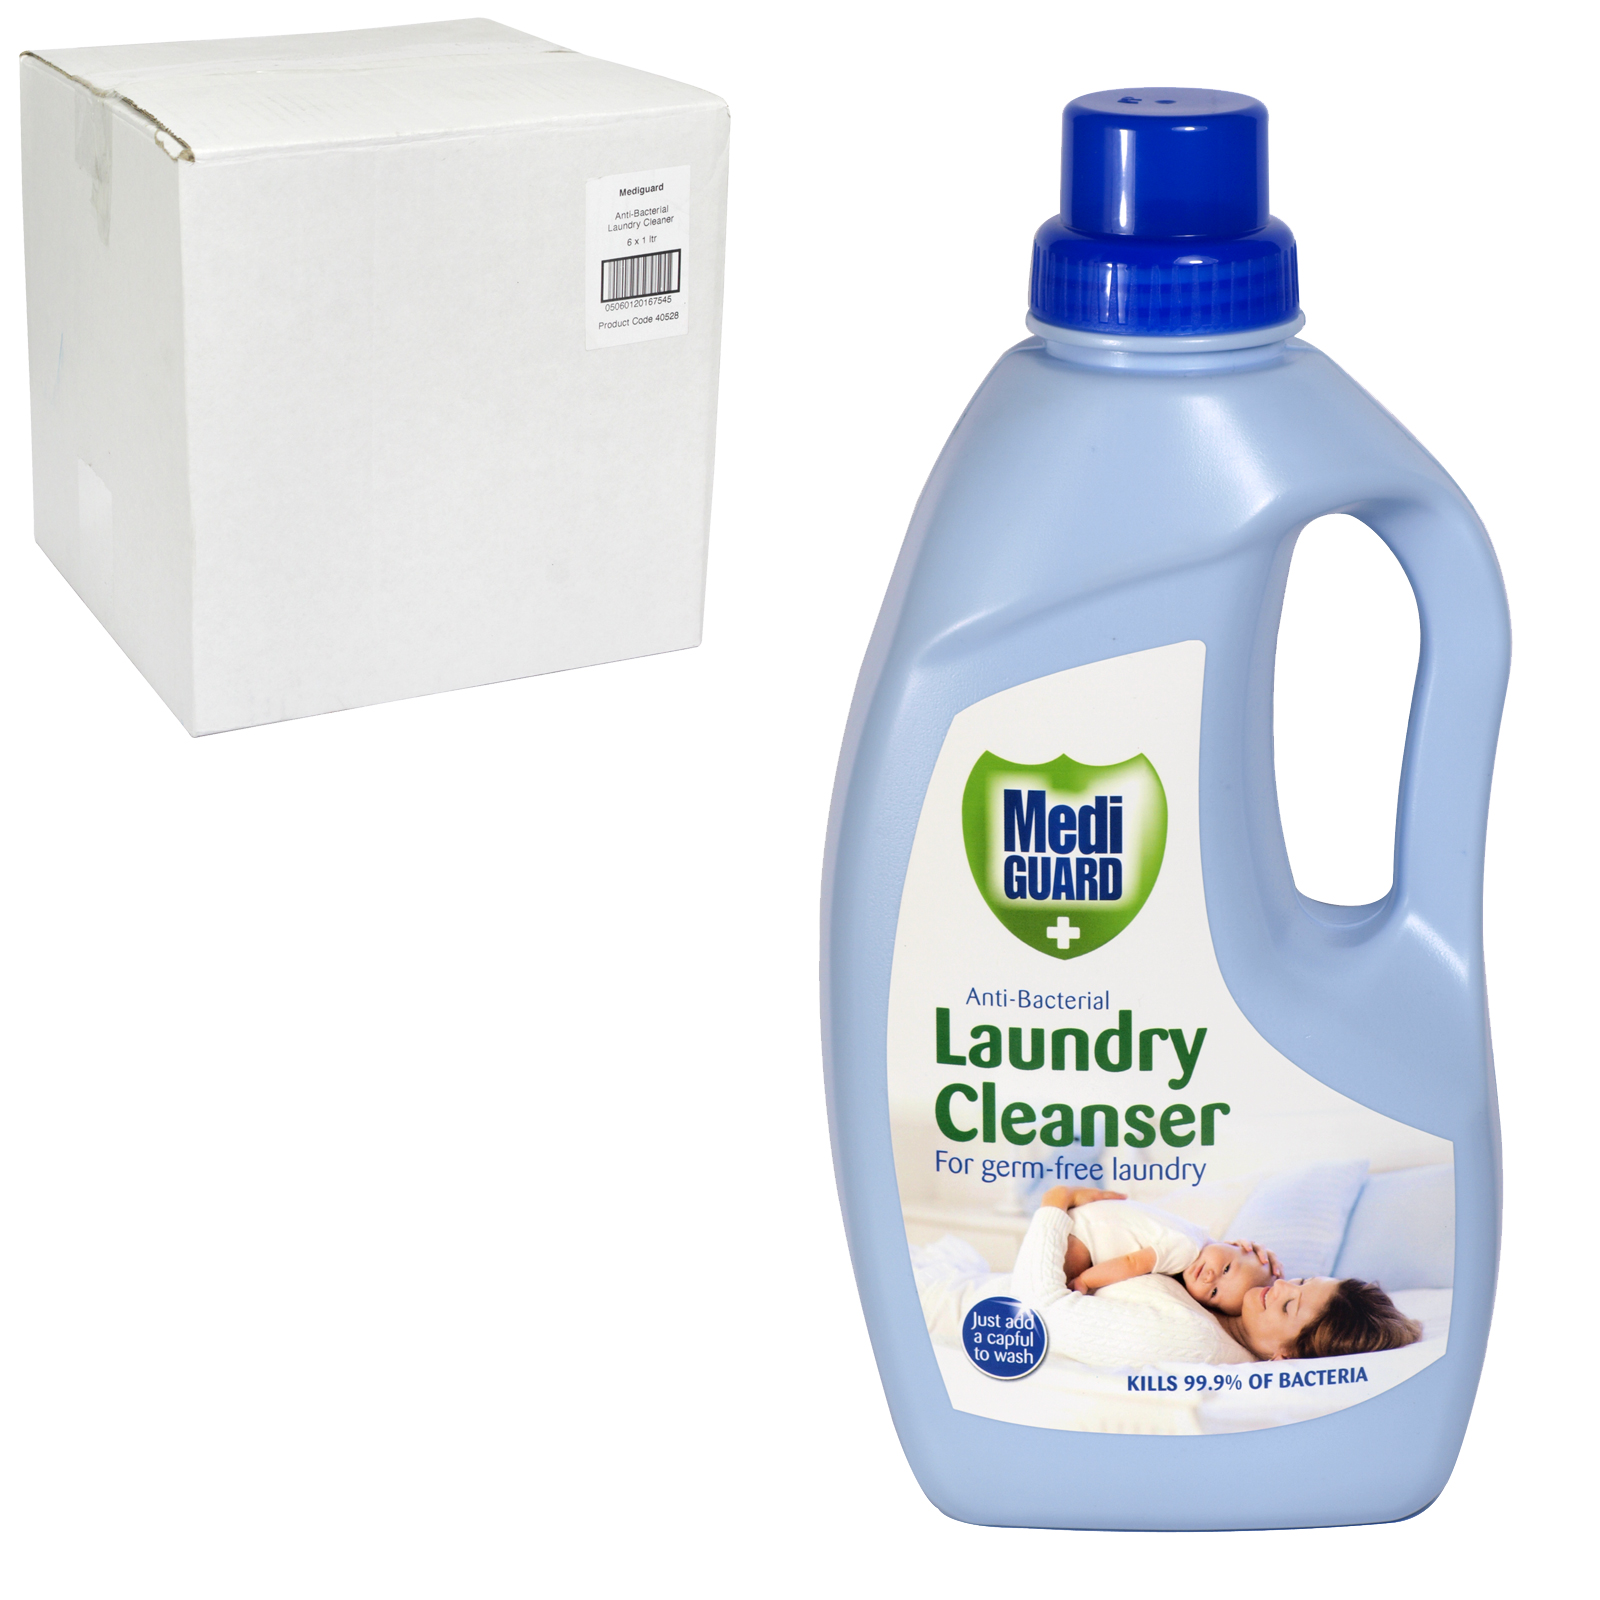 Concord Cash And Carry Cussons Baby Liquid Detergent Anti Bacterial 750ml Mediguard Laundry Cleanser 1l X6